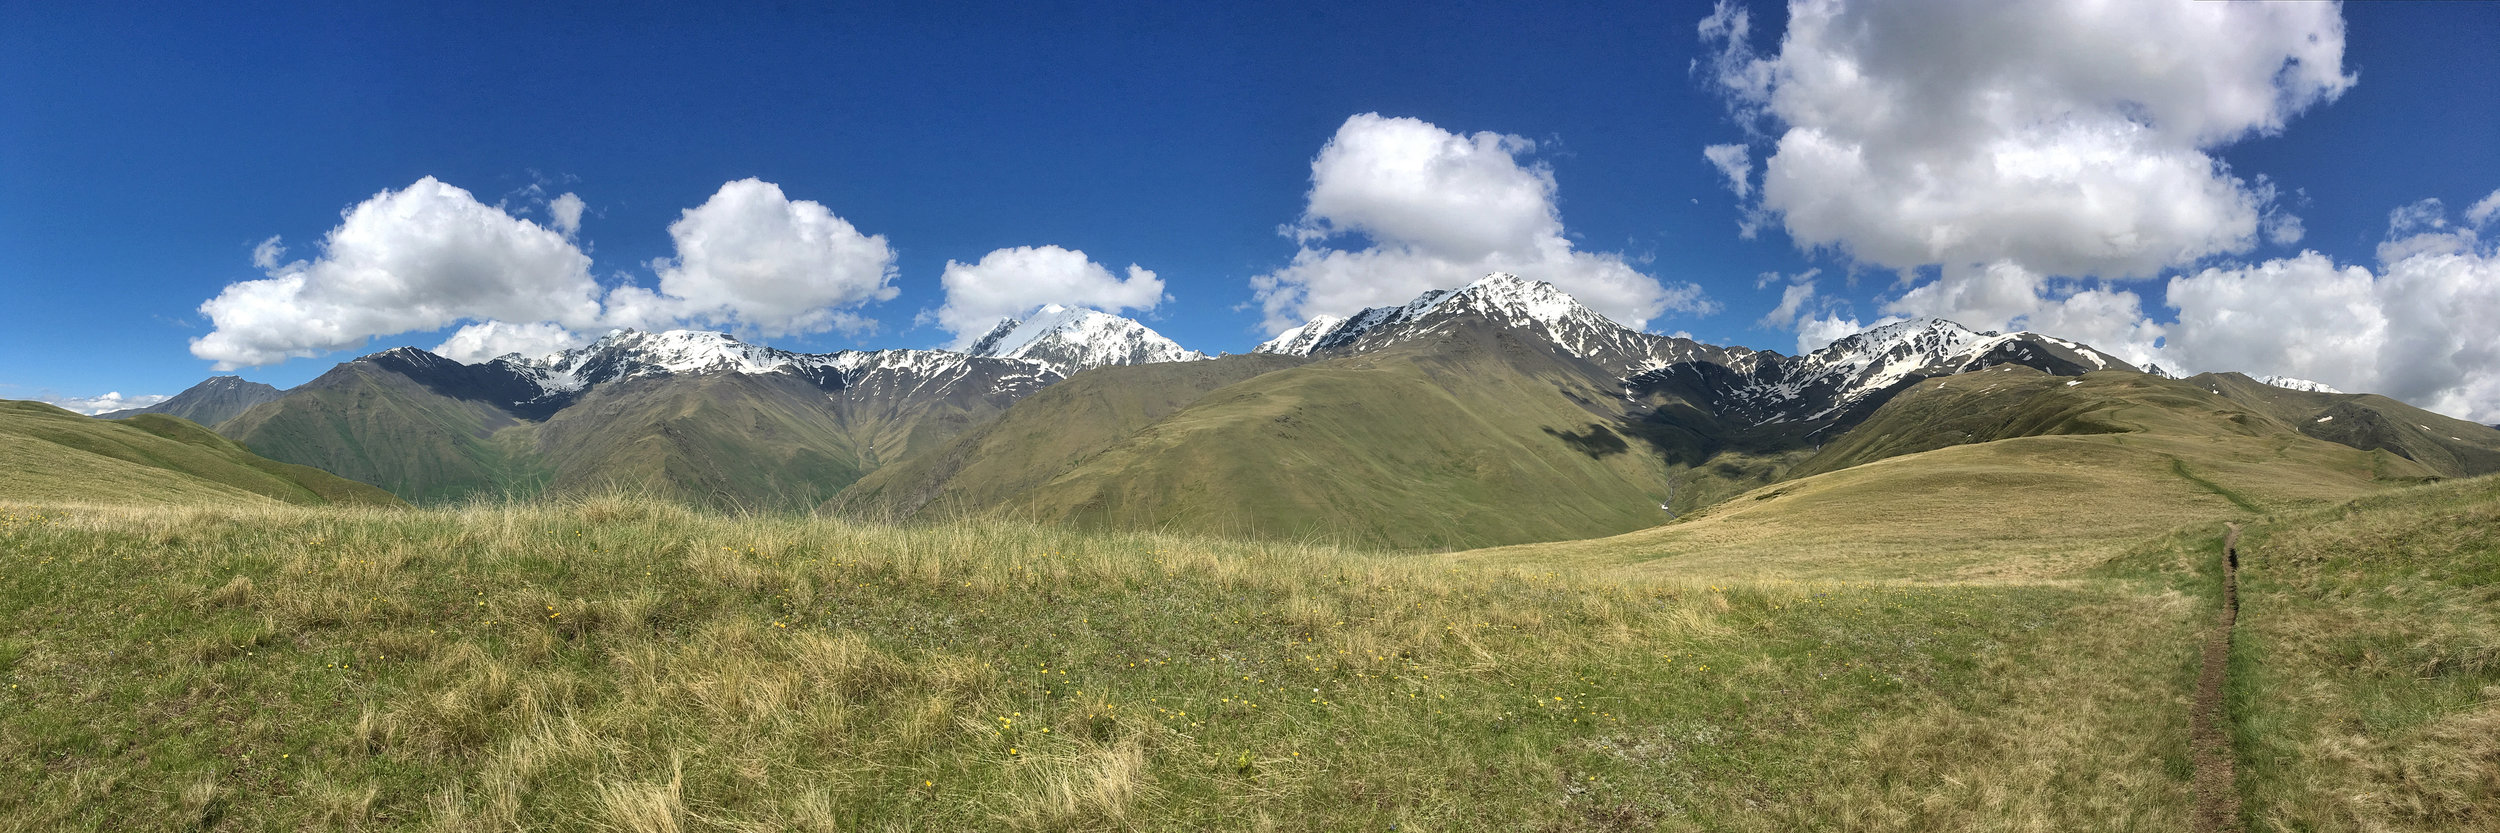 With views like this from camp, it's difficult to remember the dark side of this trek